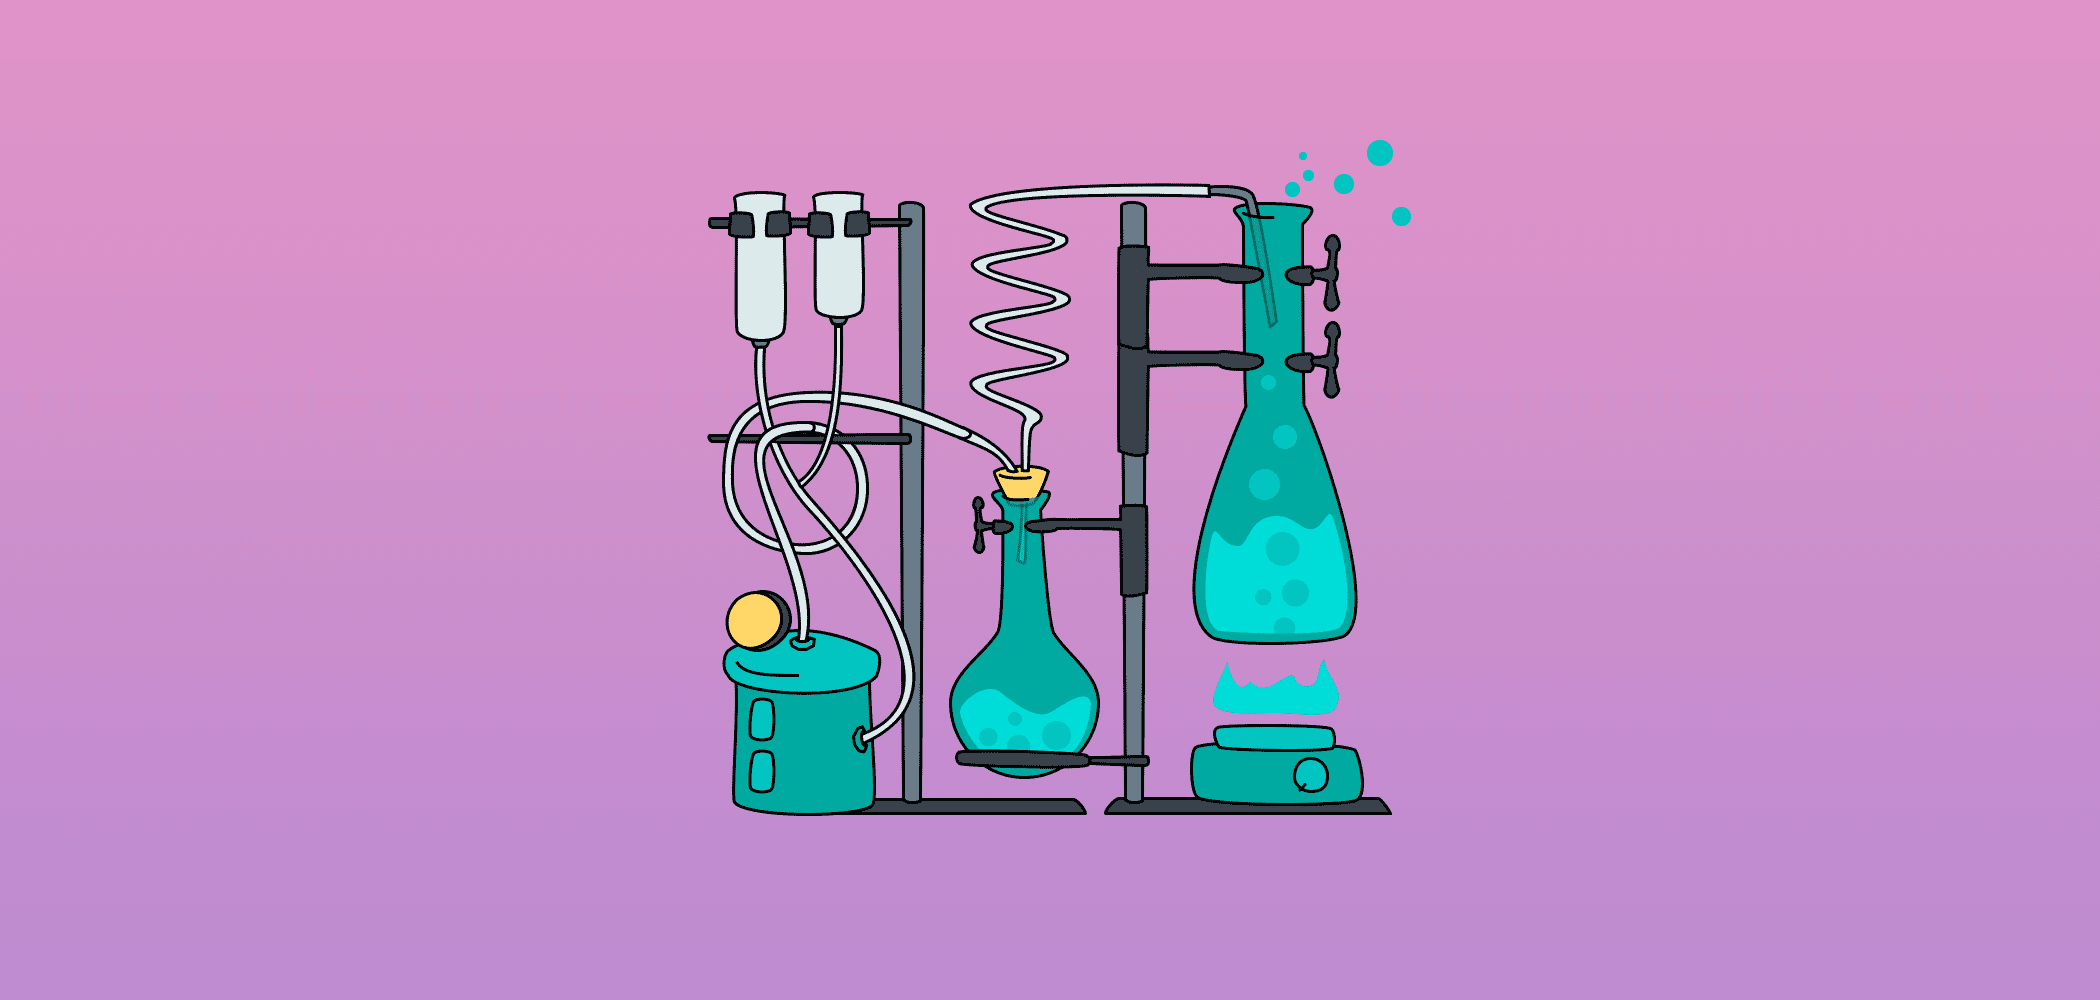 Representative image of chemistry beakers